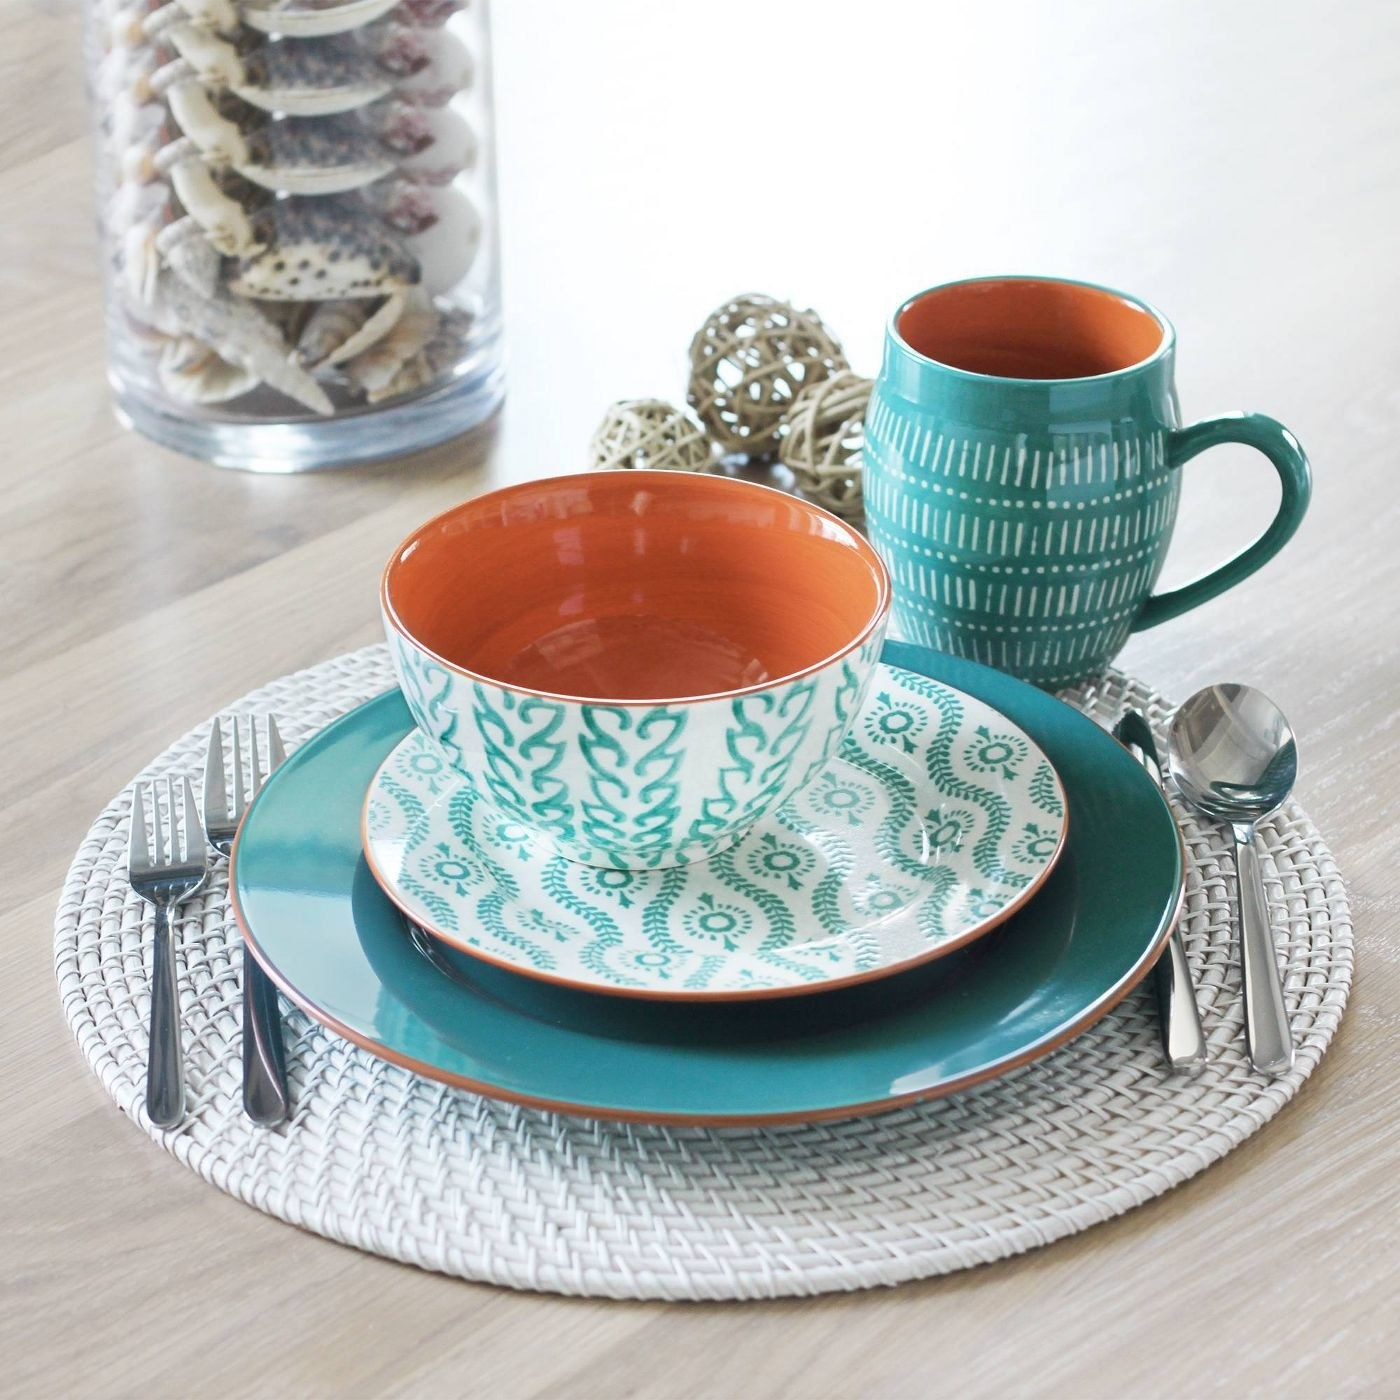 Four pieces of the stoneware dinnerware set on a dining room table